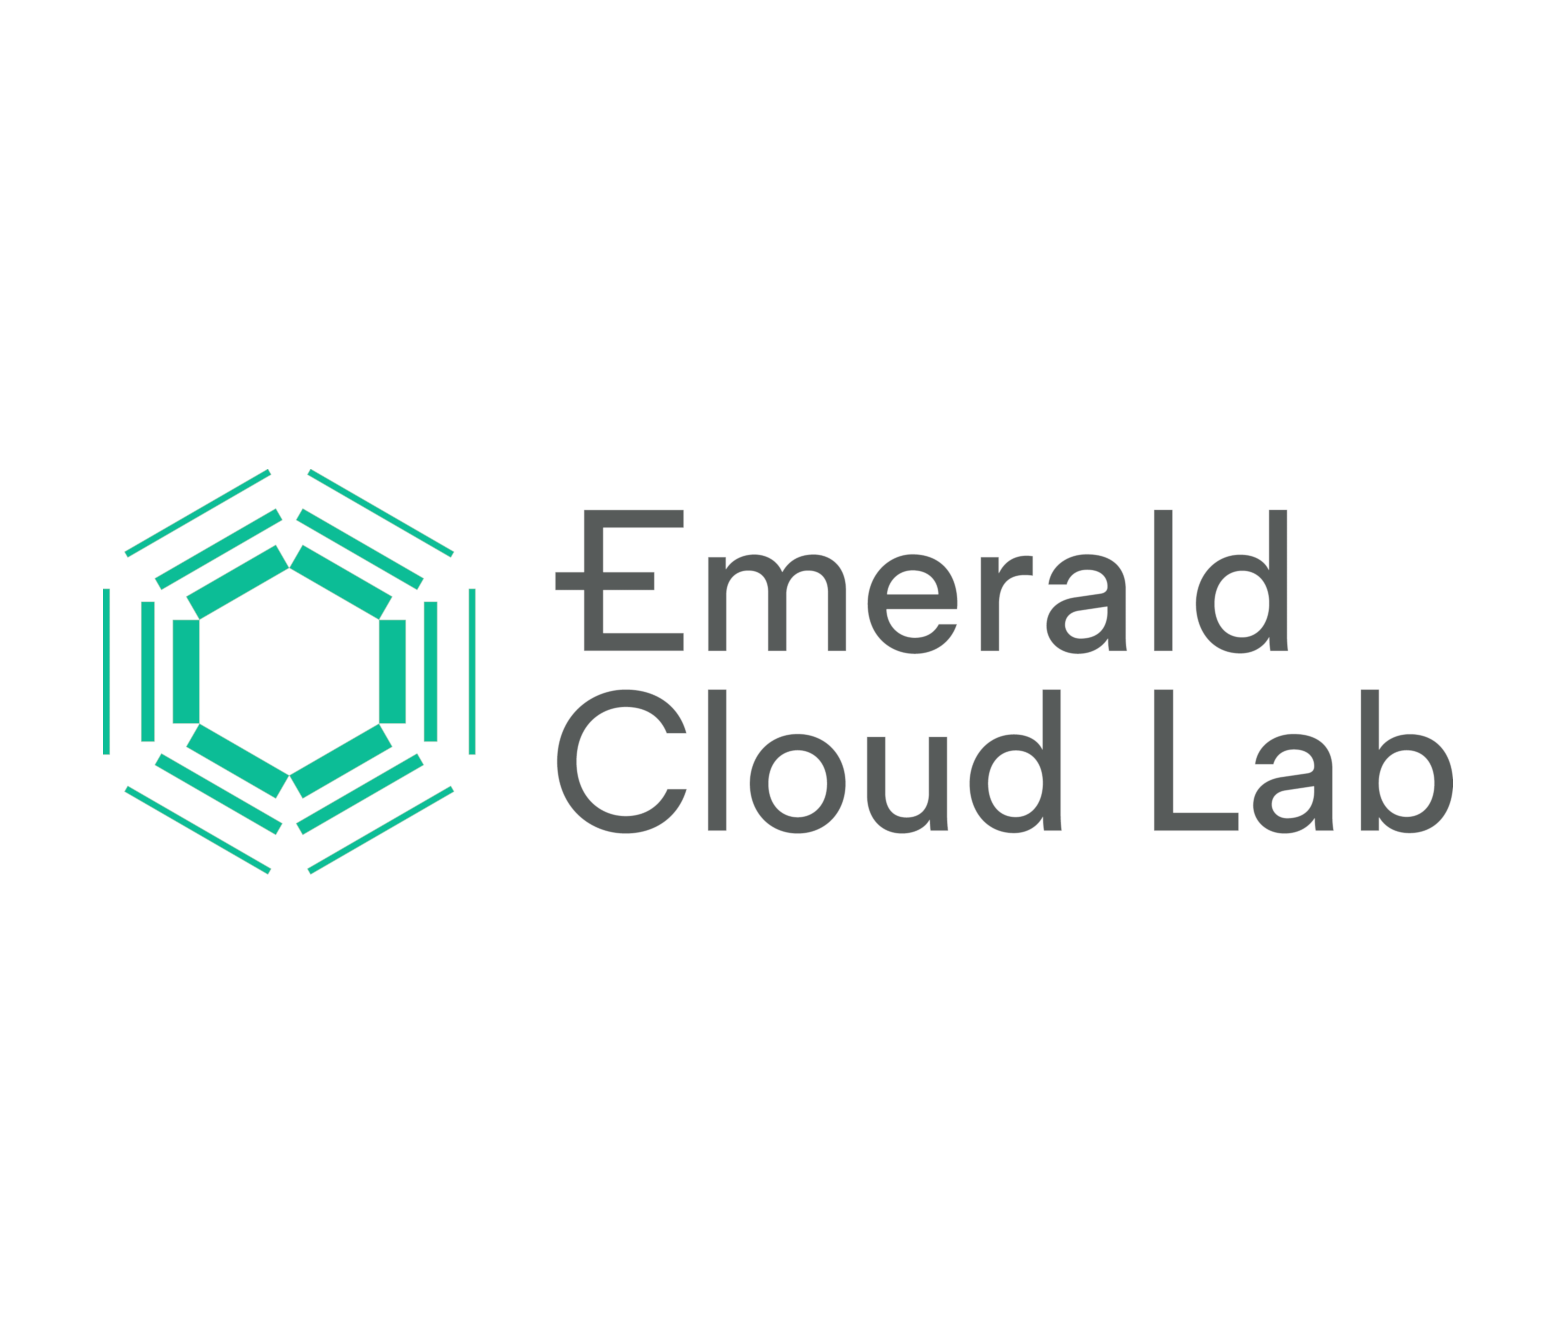 ECL's virtualized lab platform is changing the way scientific research is conducted.